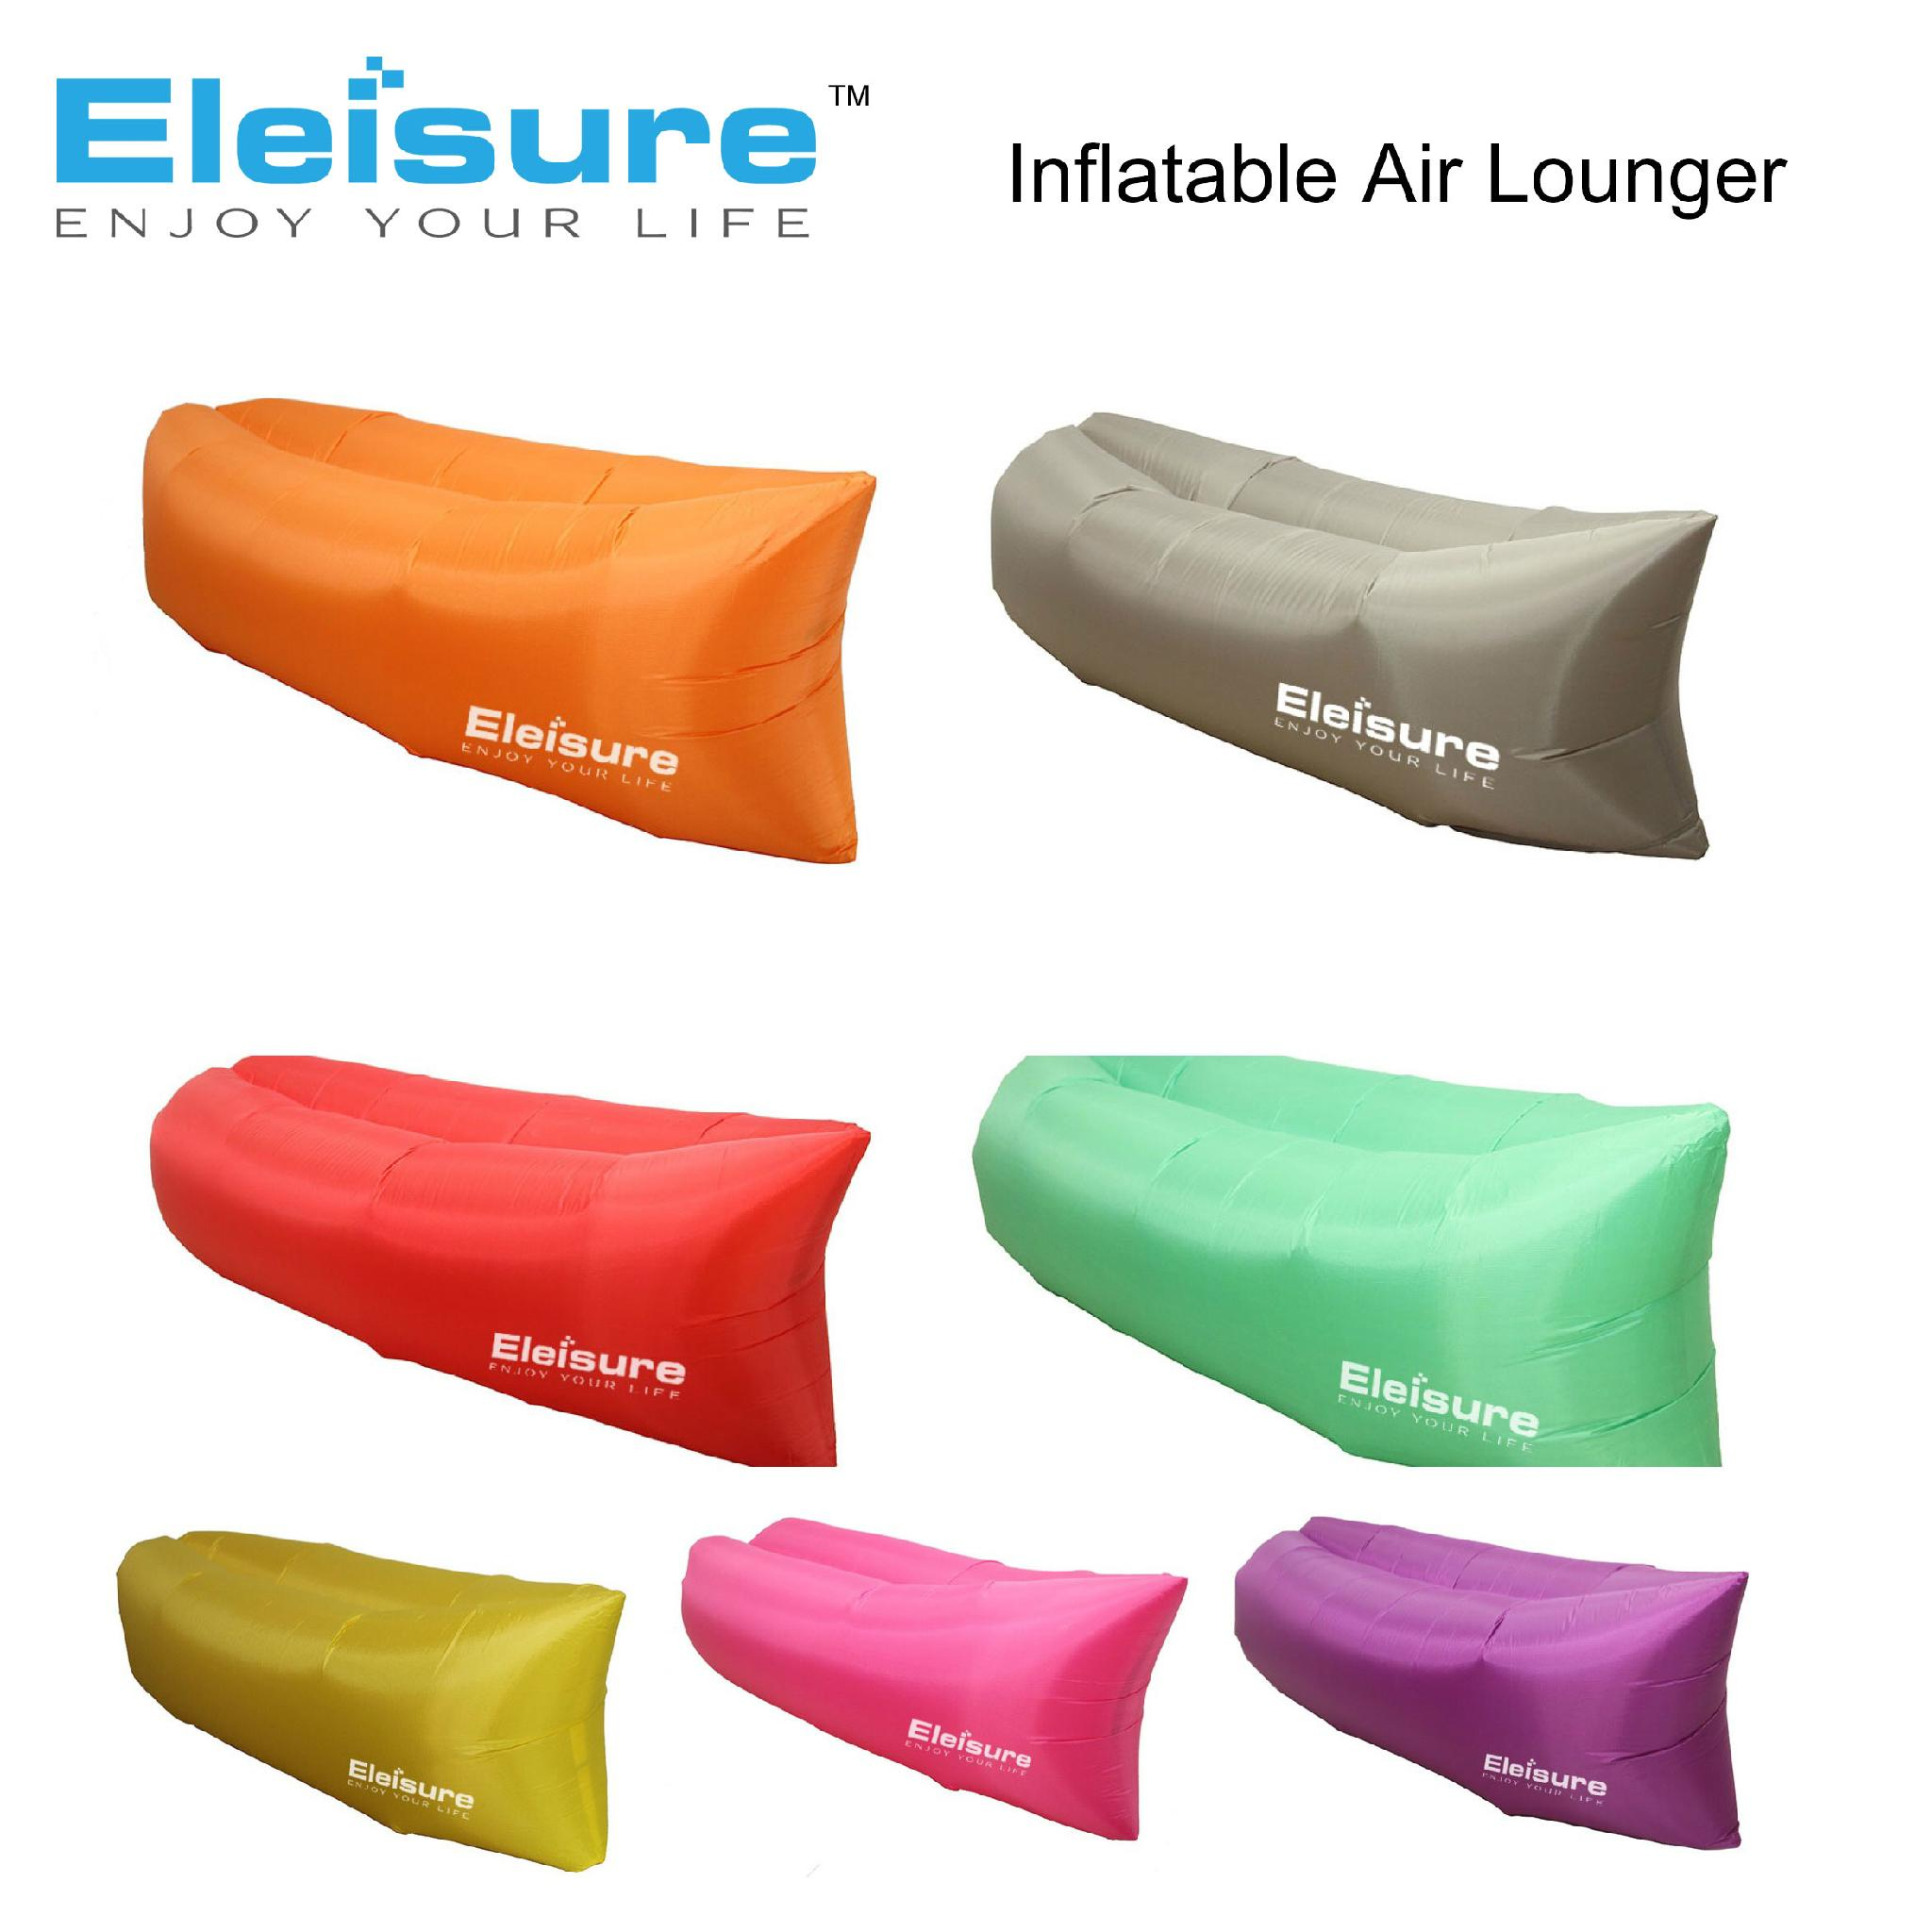 Eleisure Outdoor Inflatable Lounger Nylon Fabric Beach  : 41f9 from www.diytrade.com size 2048 x 2048 jpeg 195kB